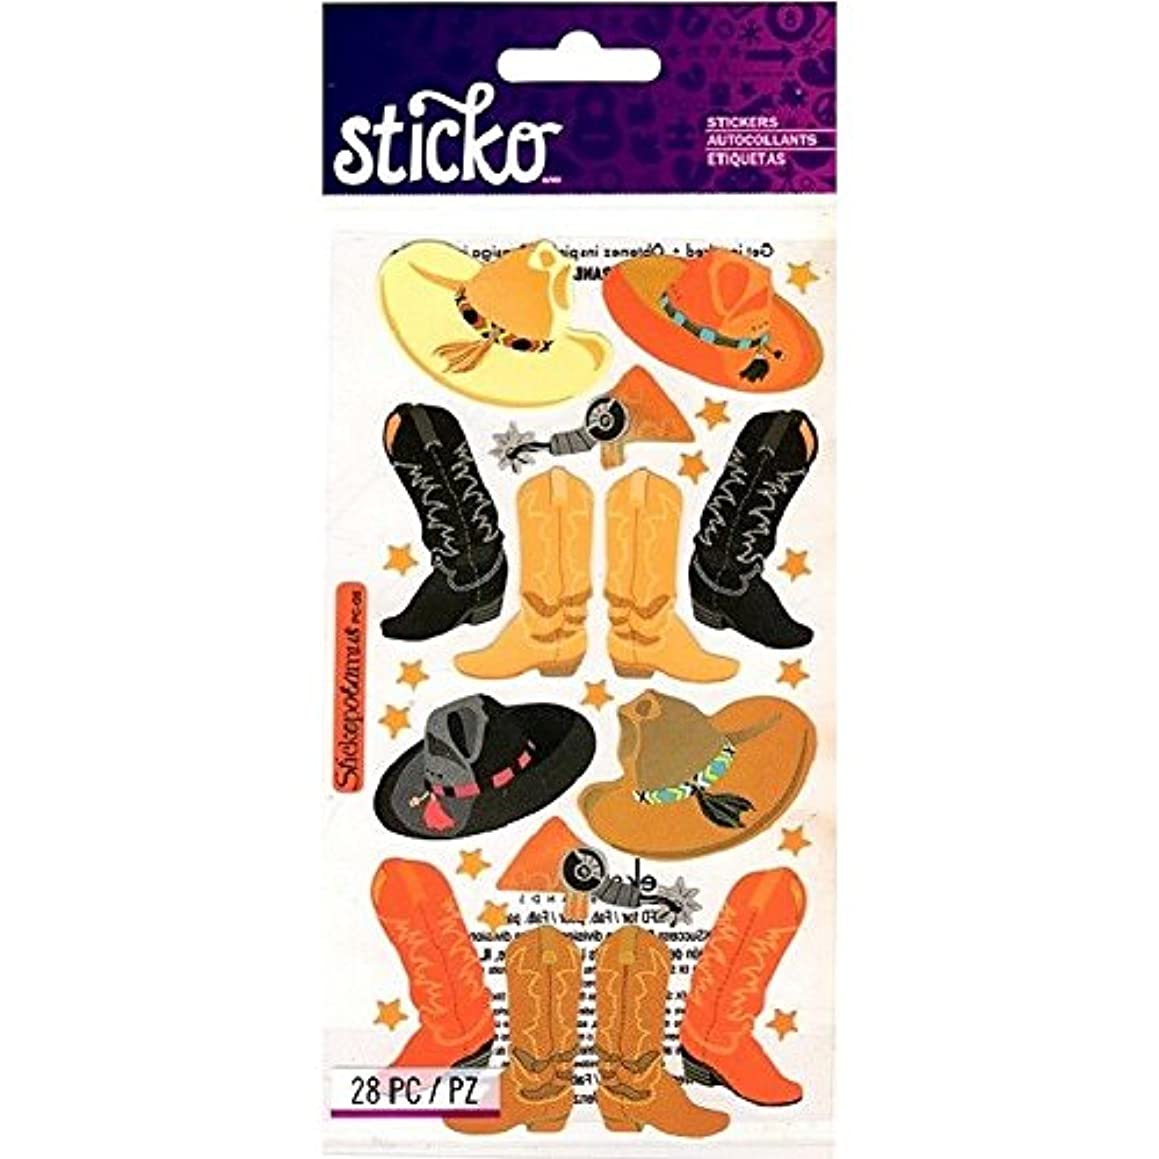 Sticko Classic Stickers Cowboy Hats & Boots SPPC08 - 28 Stickers